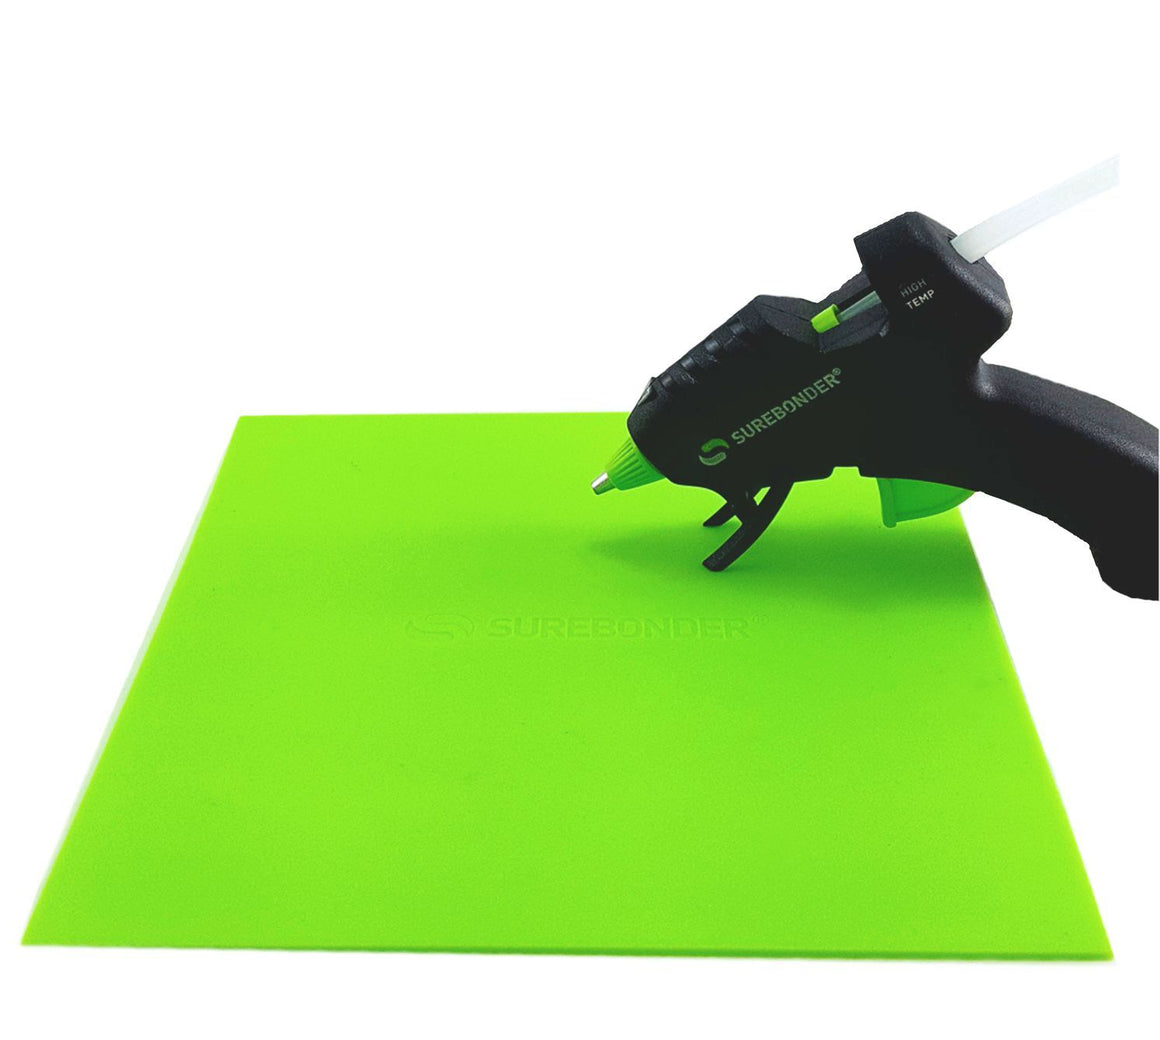 Hot glue gun hovers over a green Surebonder silicone pad, measures 8 inches by 8 inches